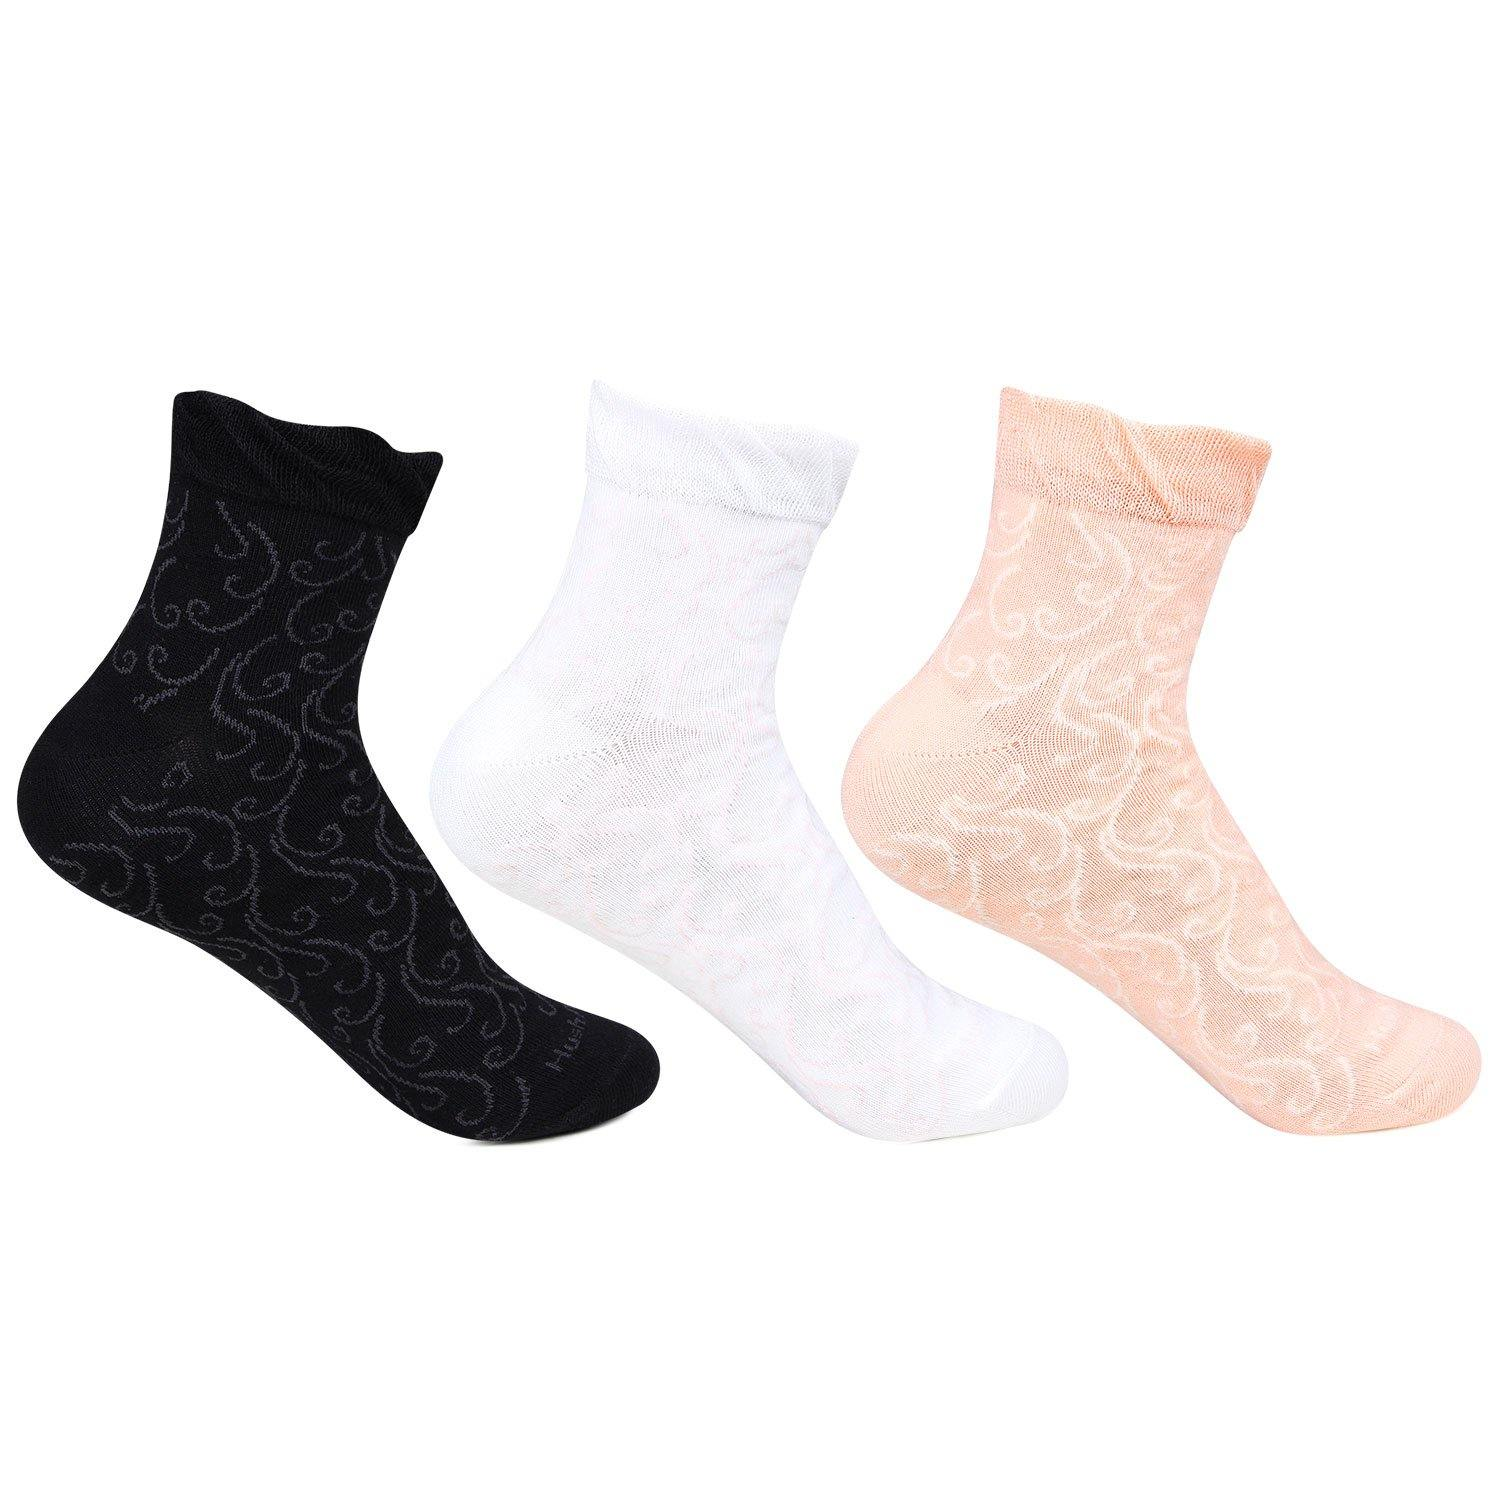 Hush Puppies Women's Fancy Ankle Socks - Pack of 3